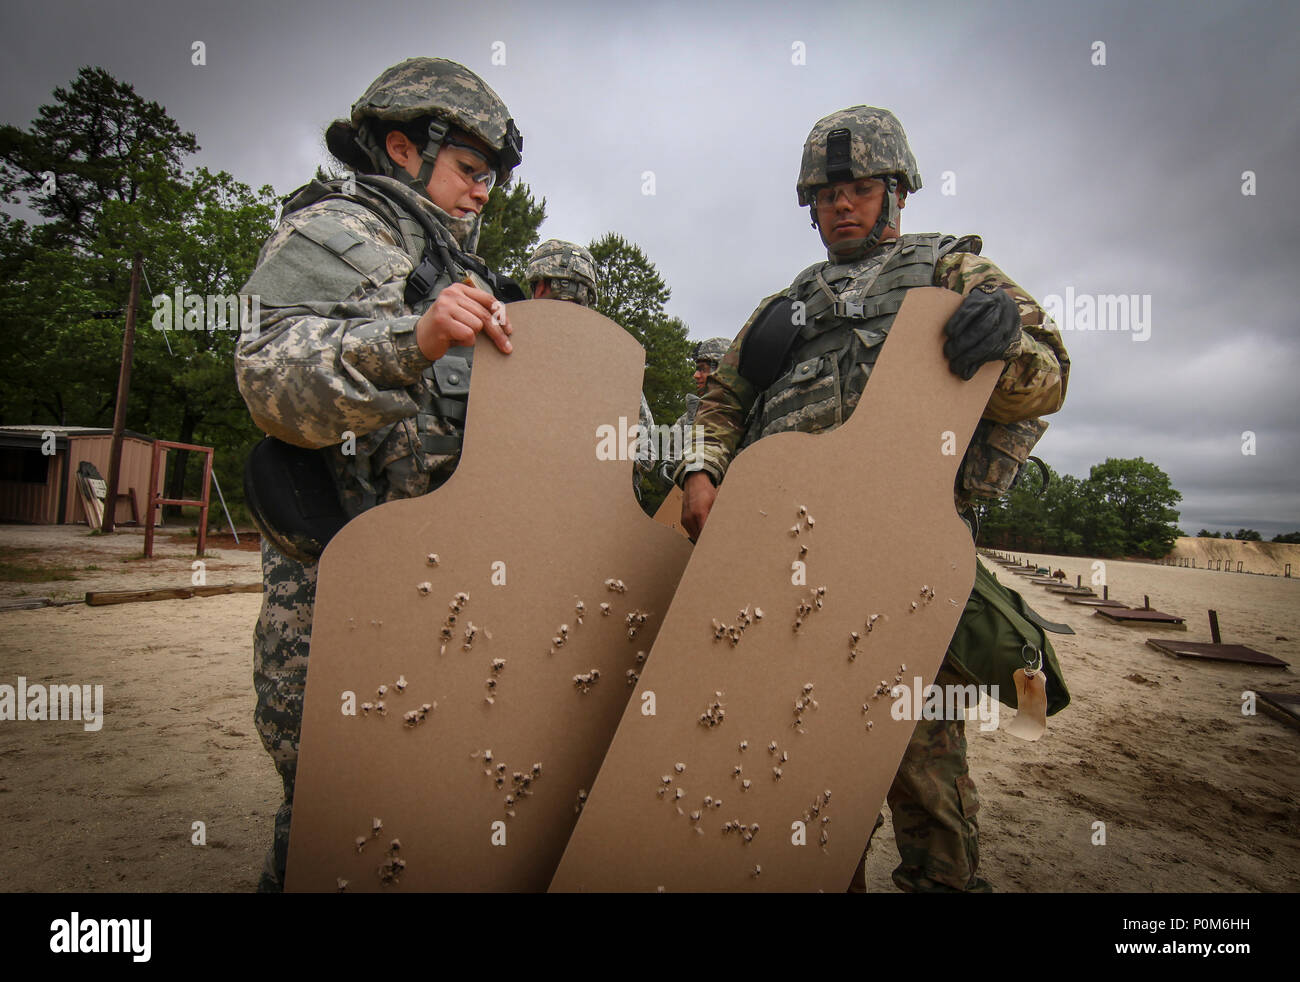 New Jersey Army National Guard Soldiers from the 250th and 350th Finance Detachments look over targets during training on Joint Base McGuire-Dix-Lakehurst, N.J., June 4, 2018. (U.S. Air National Guard photo by Master Sgt. Matt Hecht) - Stock Image